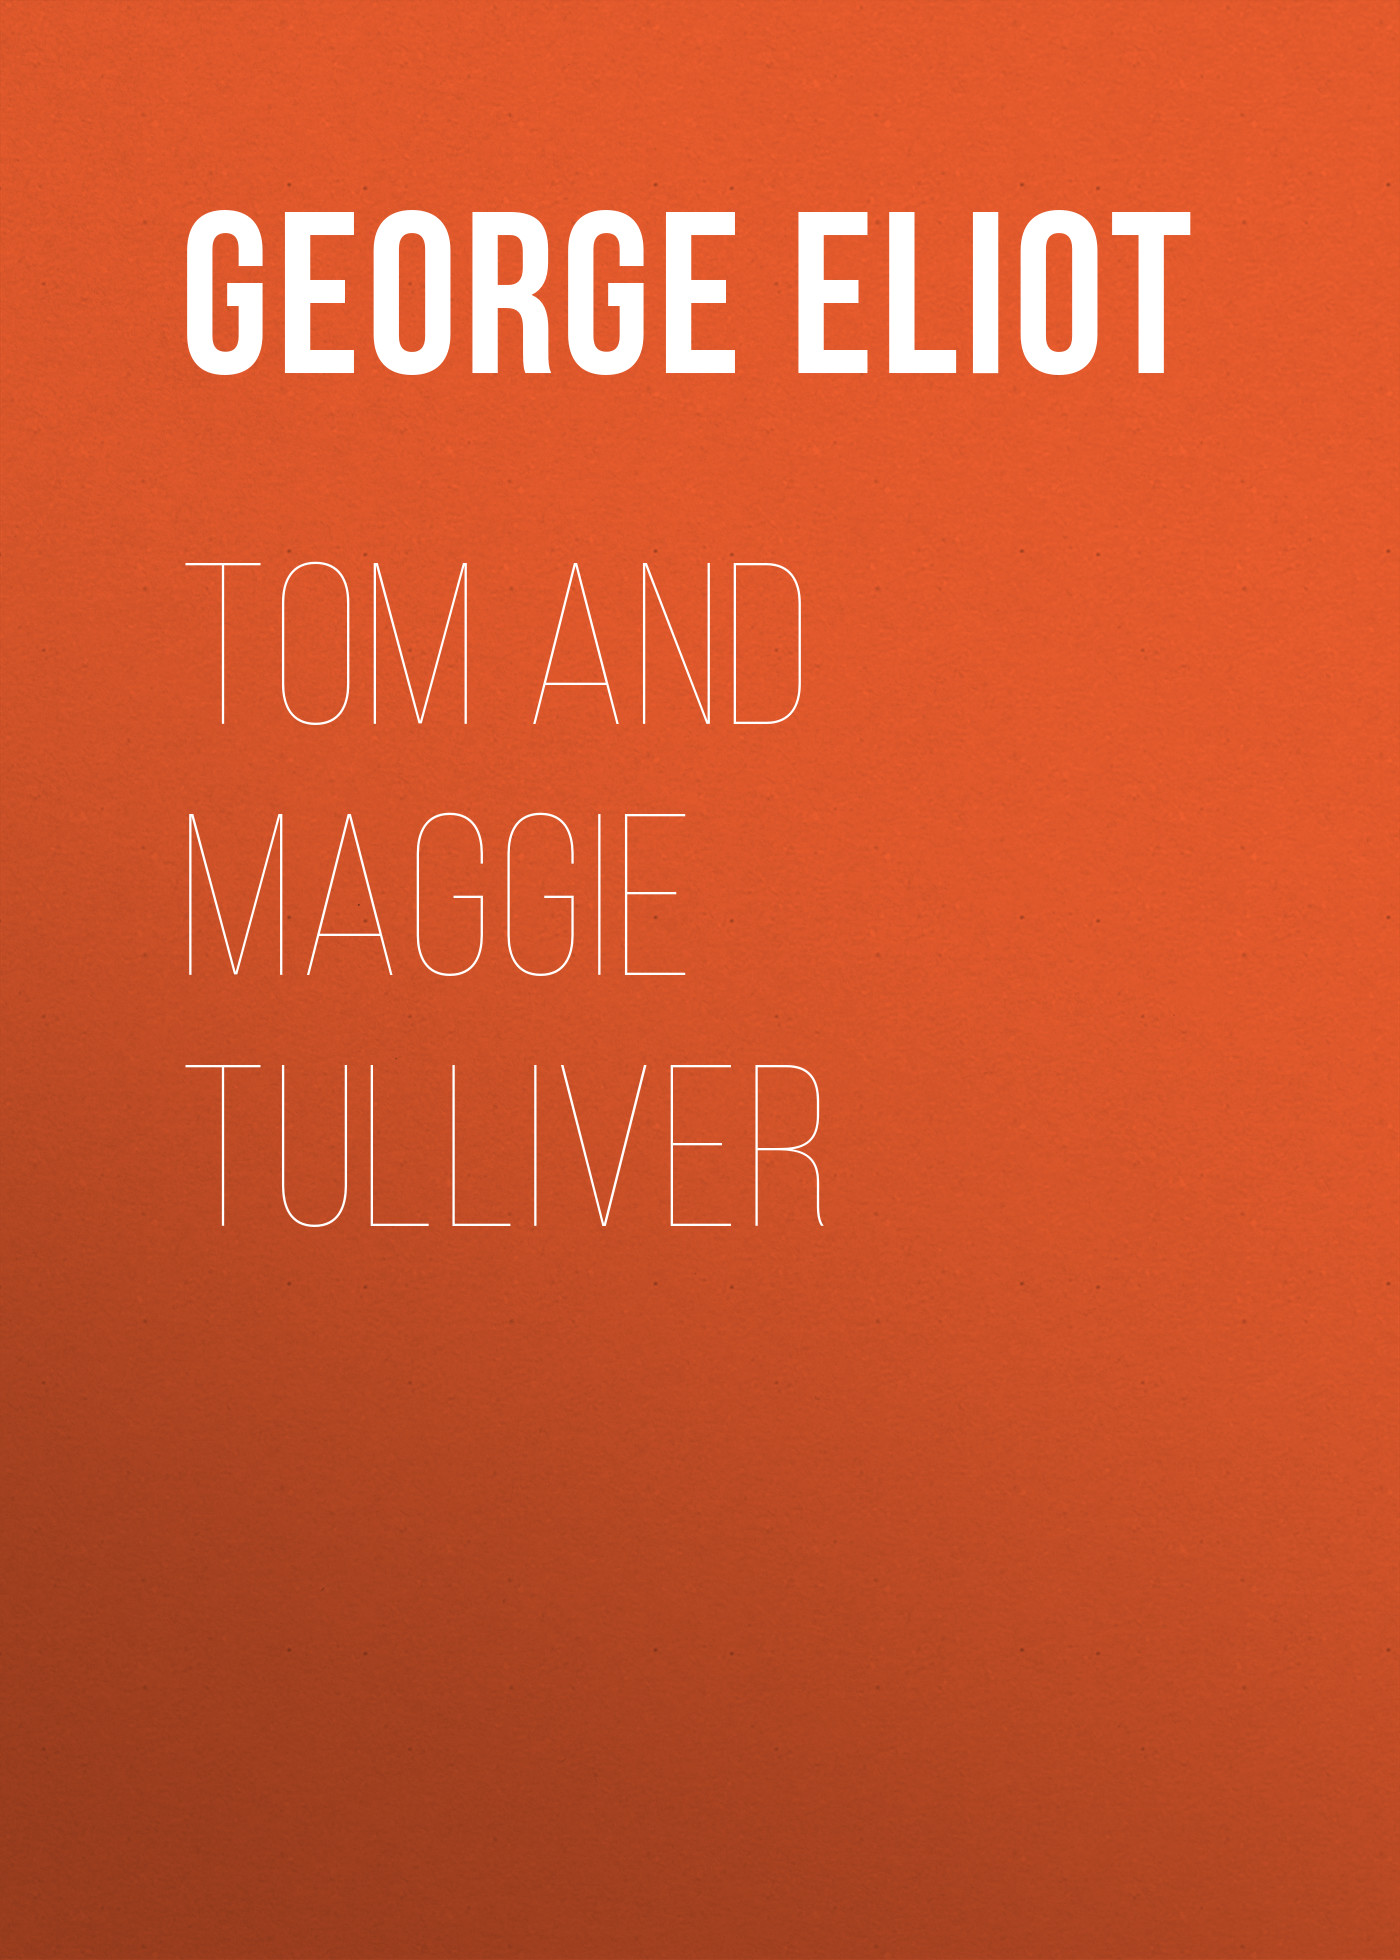 Джордж Элиот Tom and Maggie Tulliver джордж элиот daniel deronda